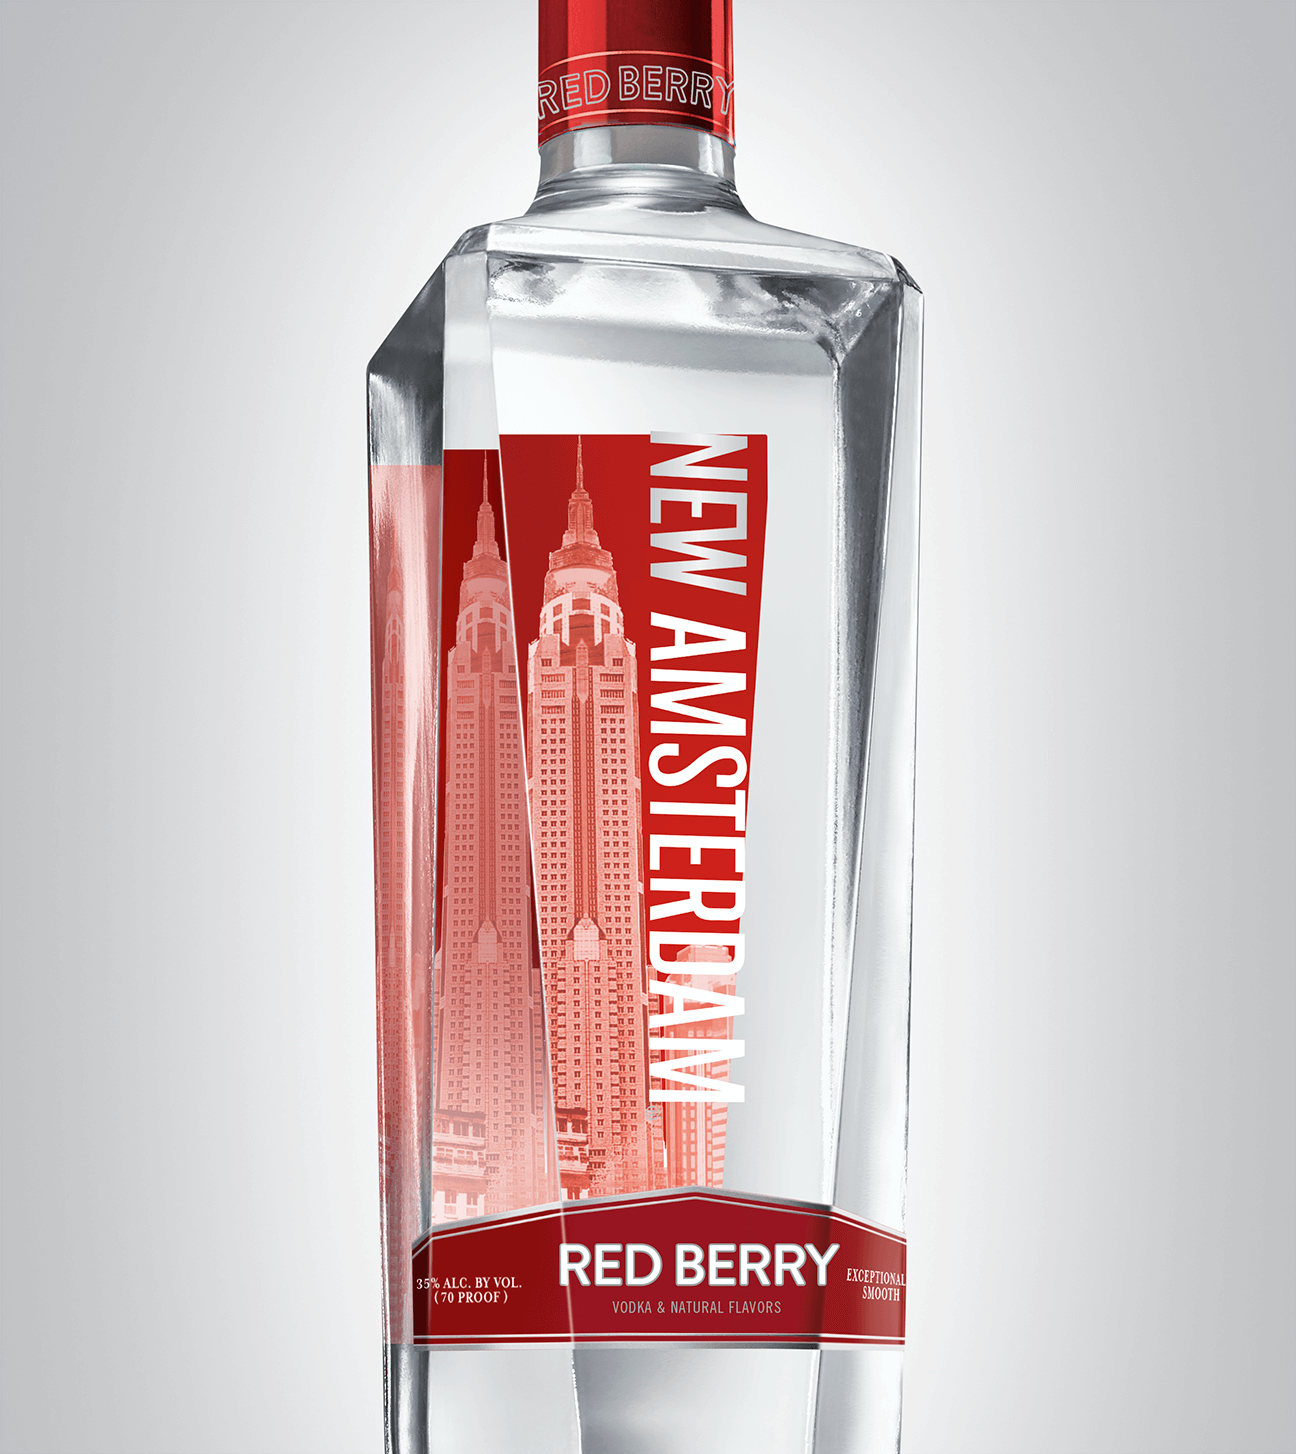 Bottle of New Amsterdam Red Berry